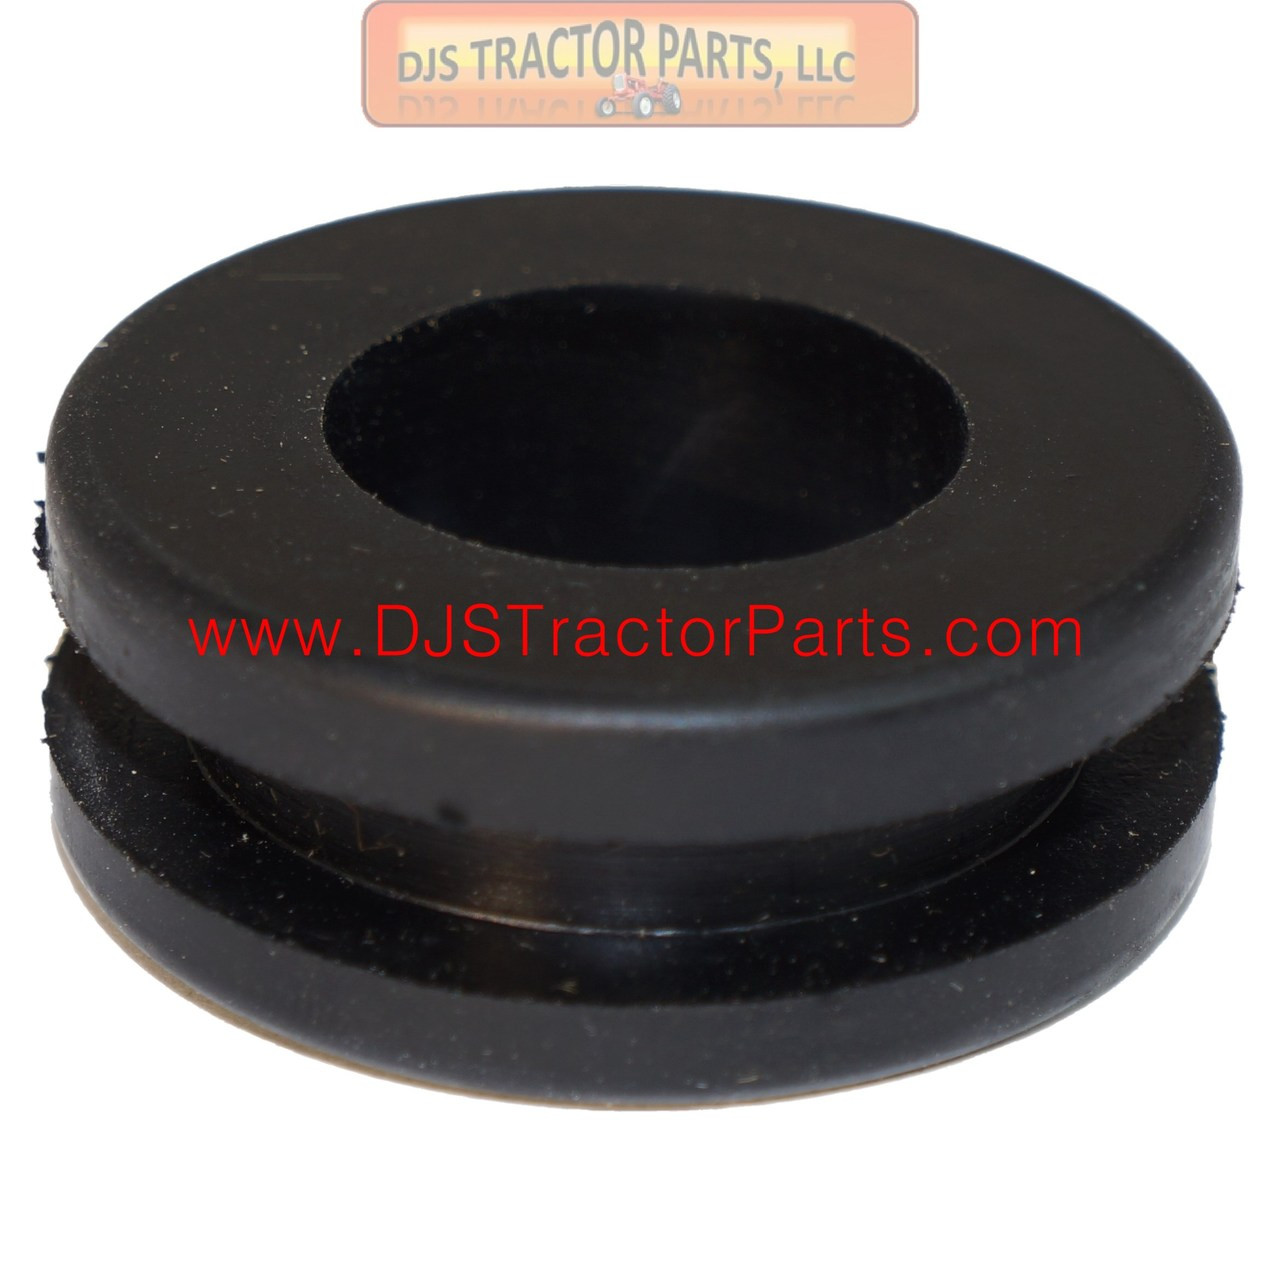 small resolution of wiring harness grommet for dash fuel tank support ab 1897d djs tractor parts llc